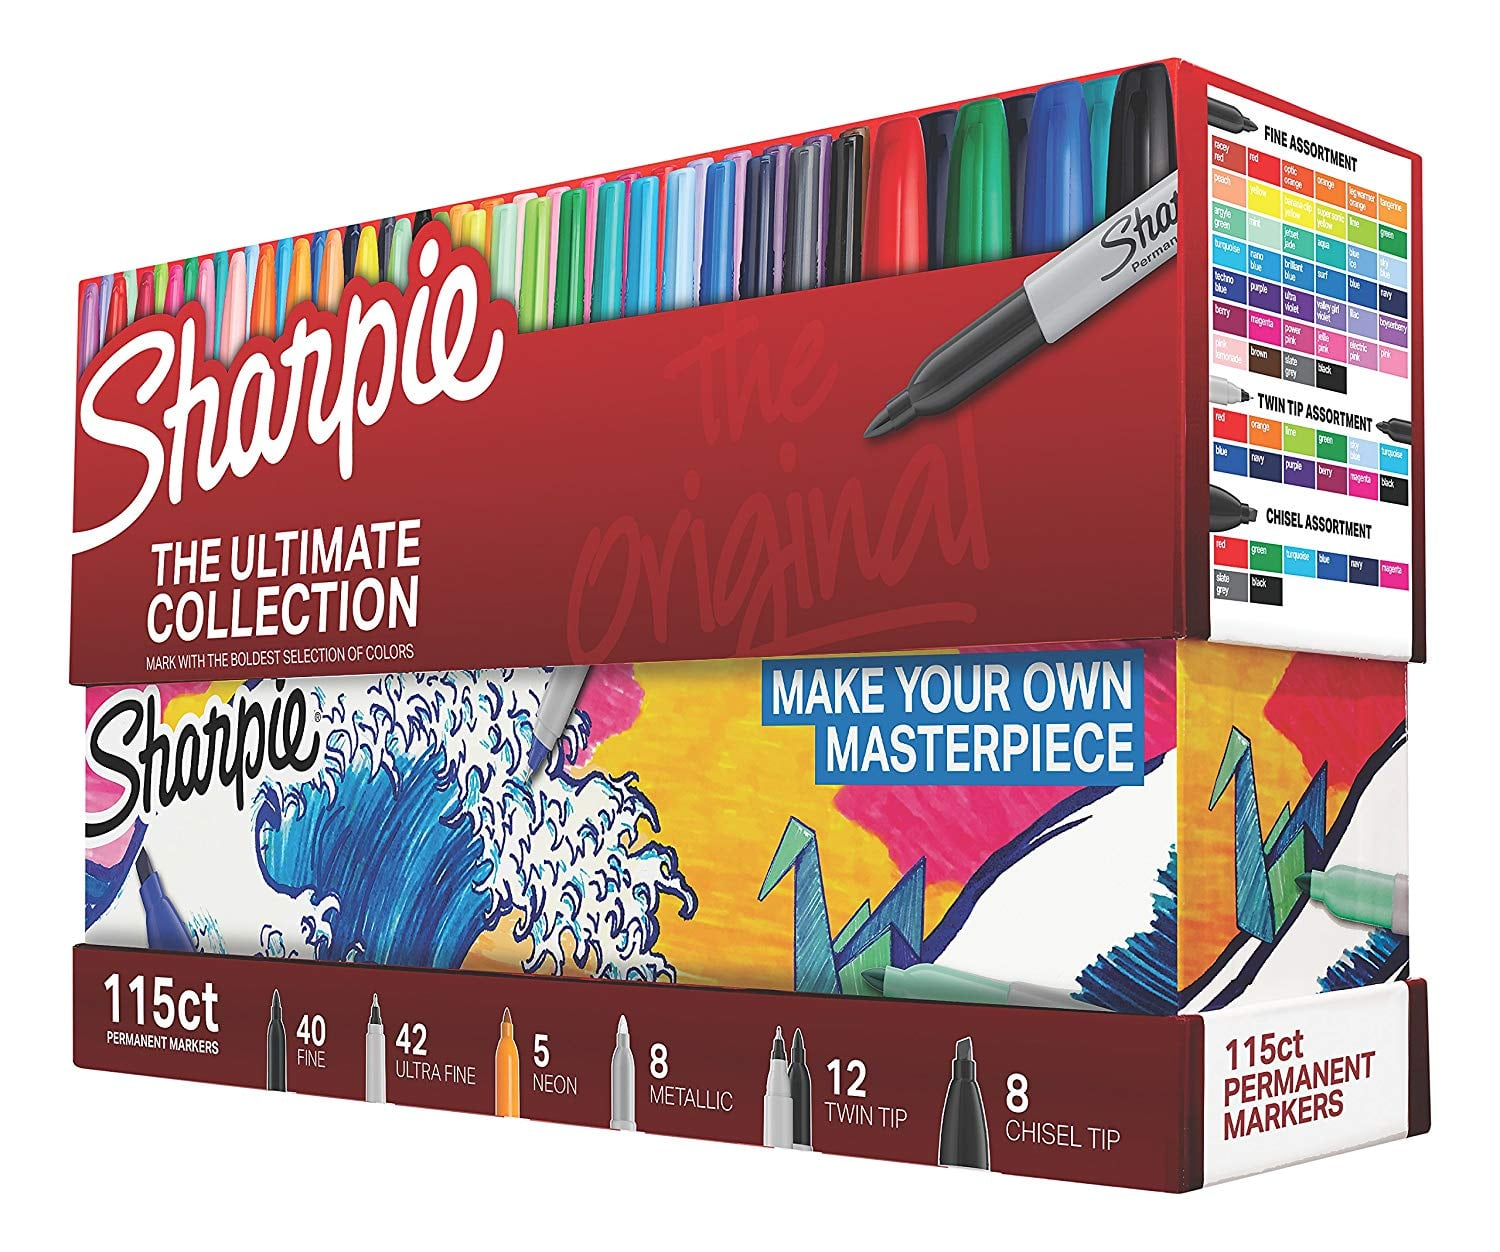 Sharpie 1983255 Permanent Markers Ultimate Collection, Fine and Ultra Fine Points, Assorted Colors, 115 Count [Standard Packaging, Fine + Ultra Fine + Twin + Chisel Tip] $49.34